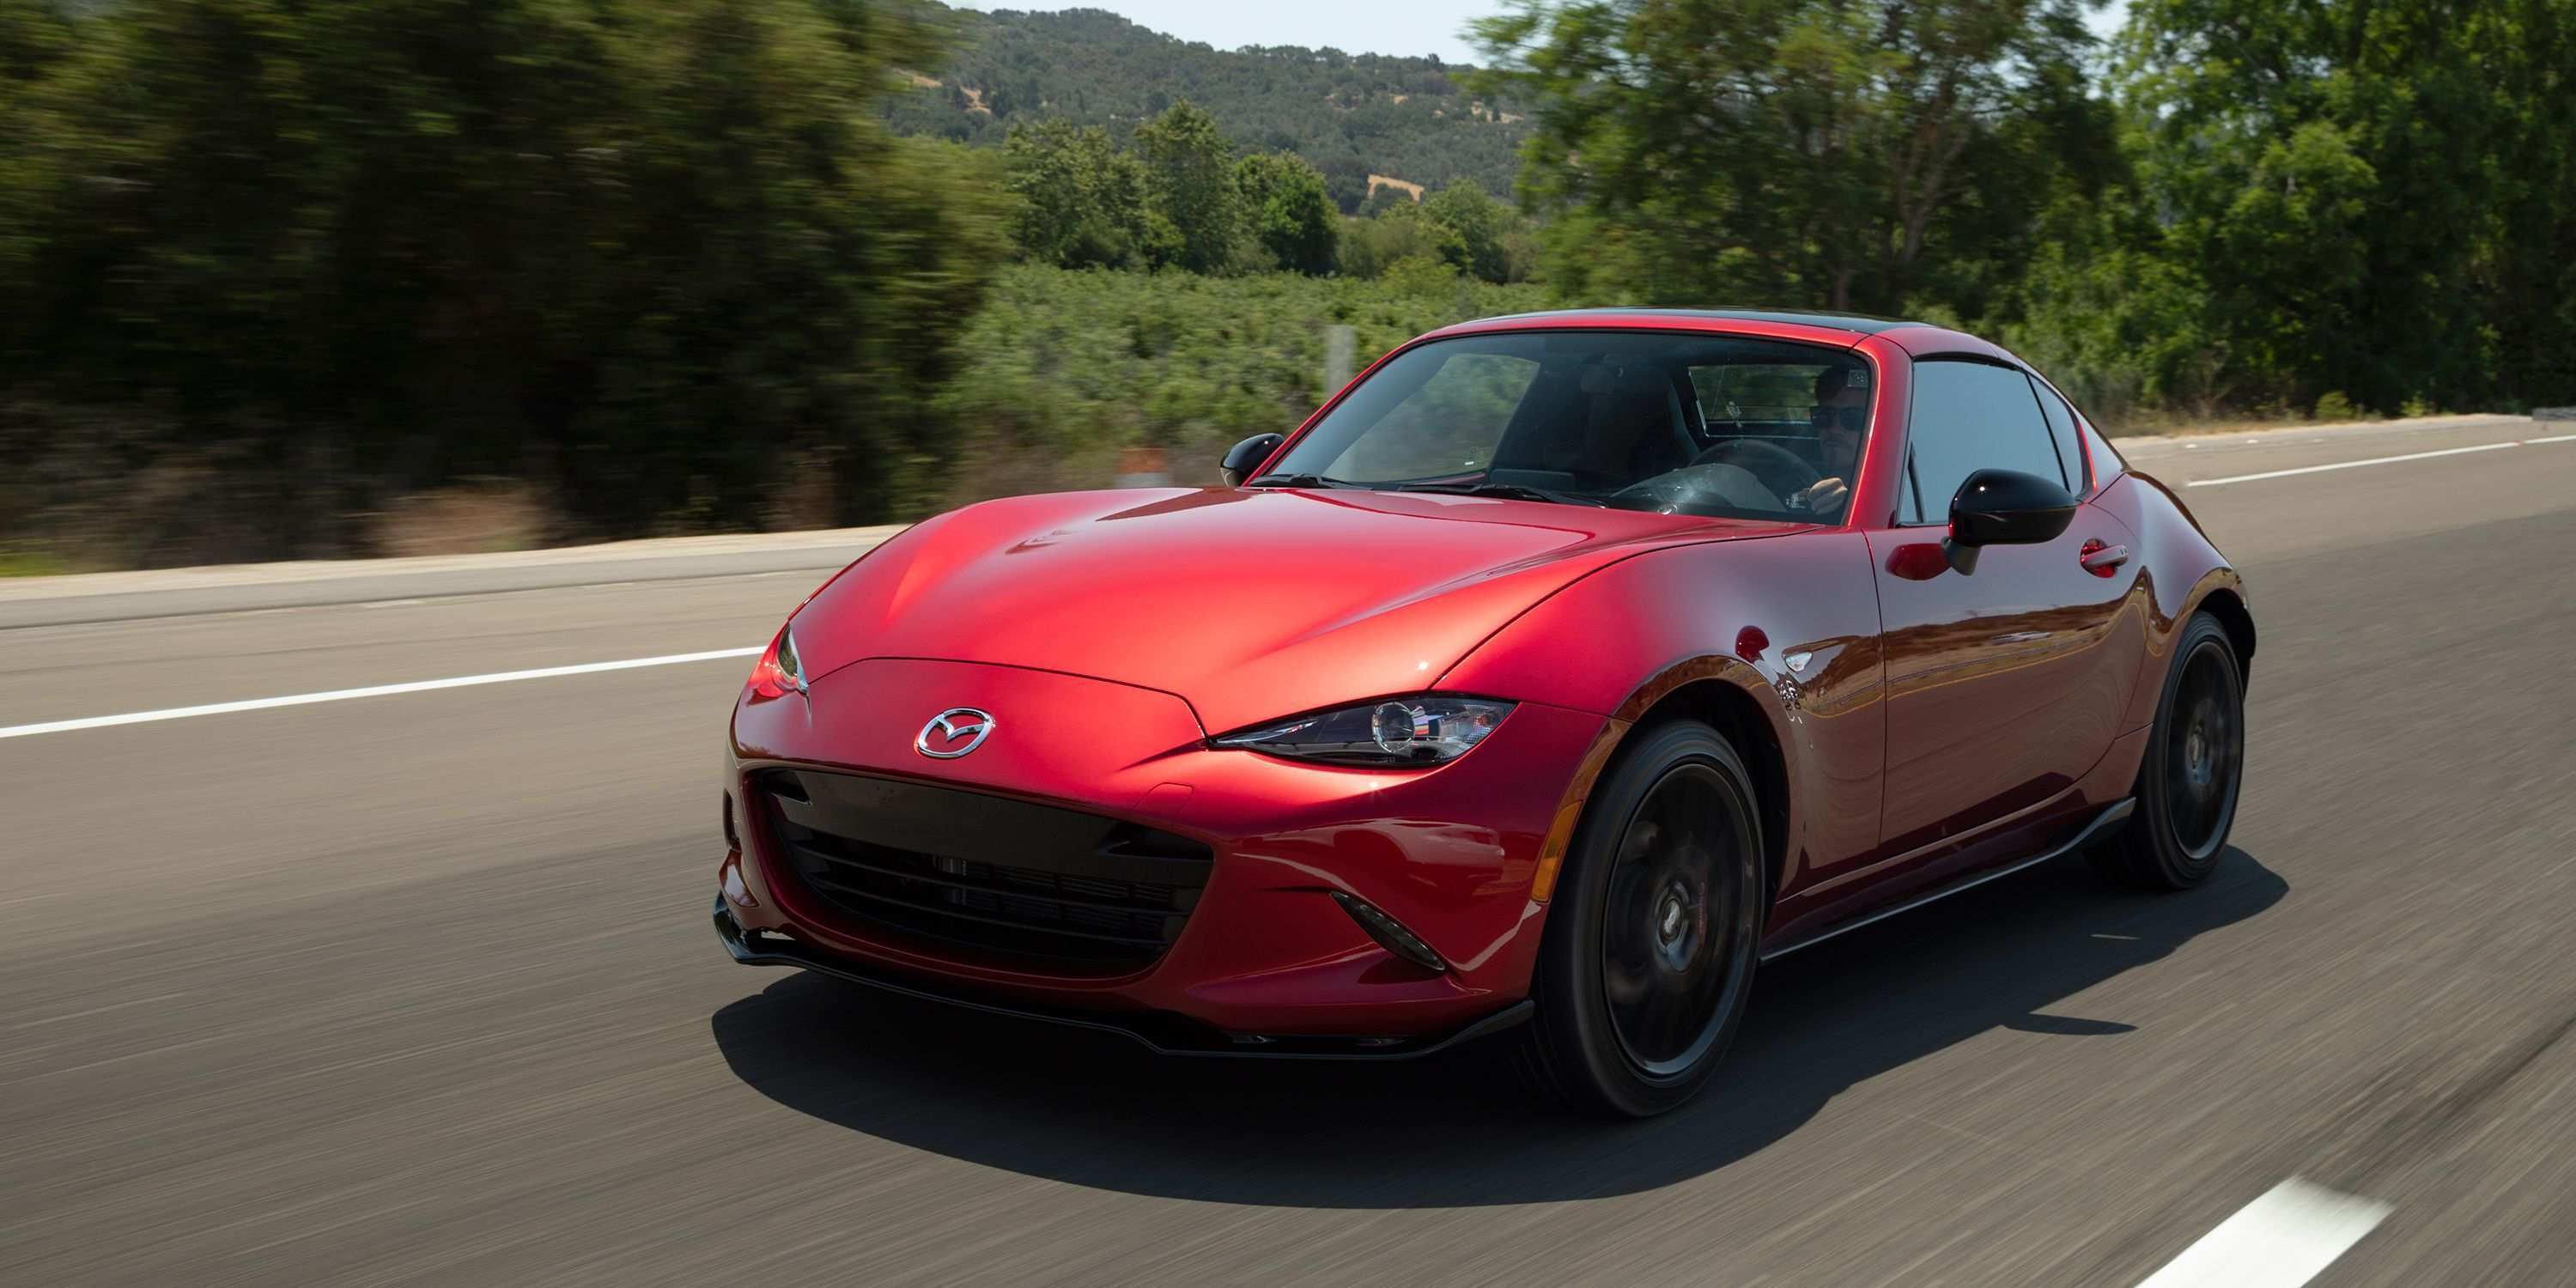 64 Best Review 2020 Mazda Mx 5 Gt S Overview for 2020 Mazda Mx 5 Gt S